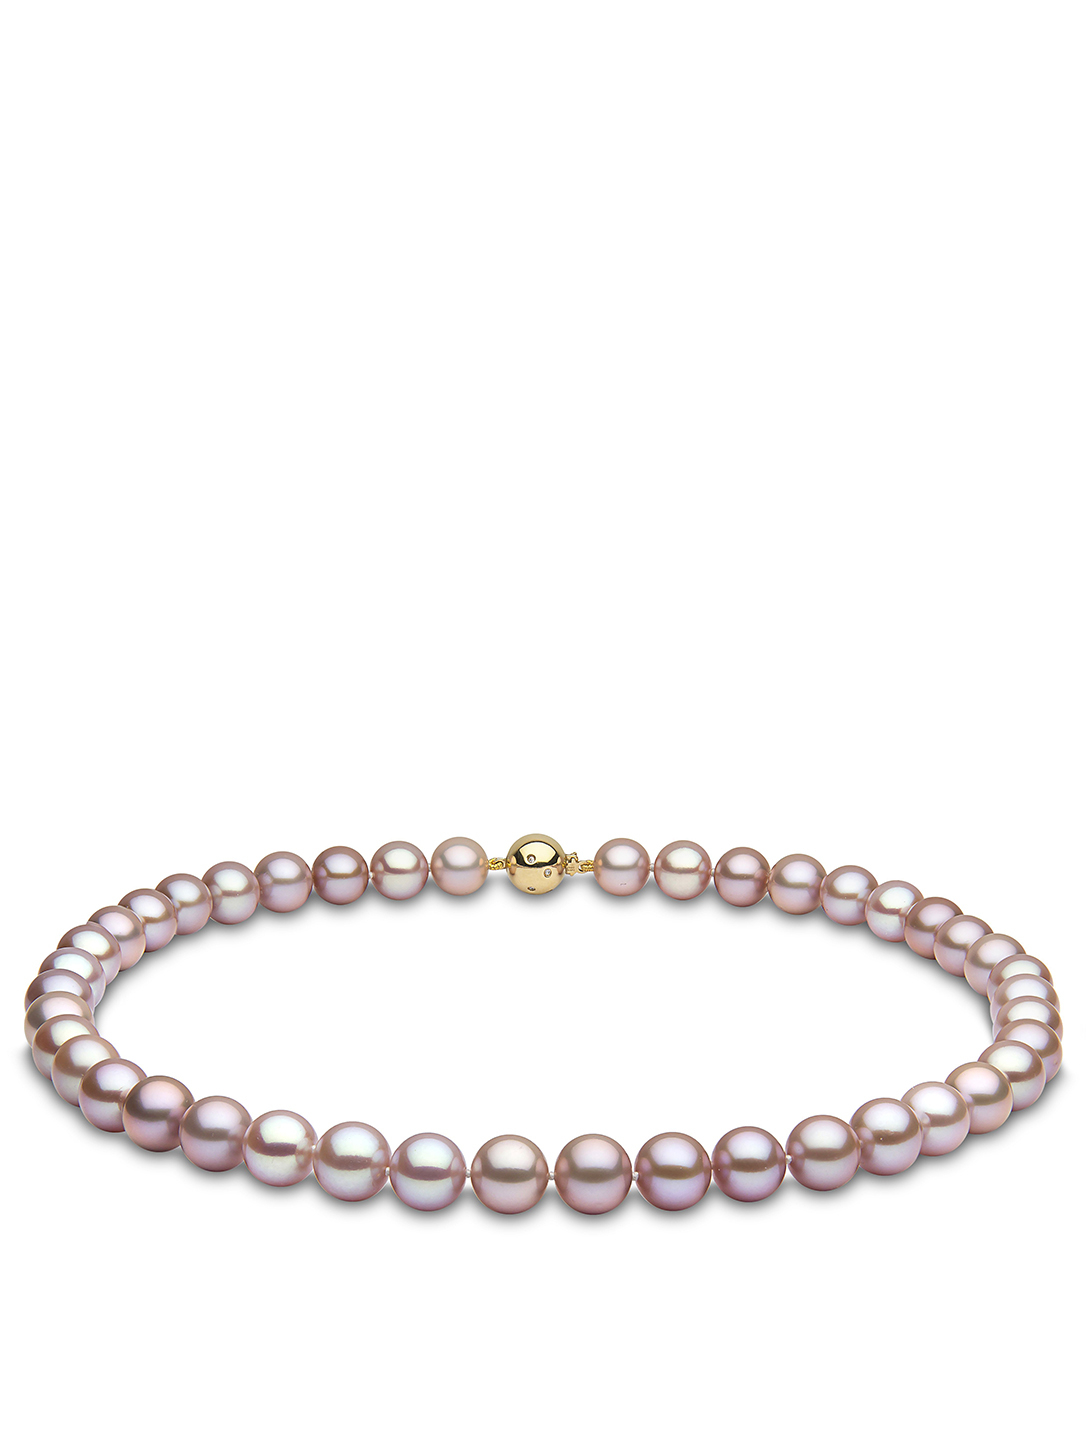 YOKO LONDON Collier de perles en or 18 ct avec diamants Femmes Blanc